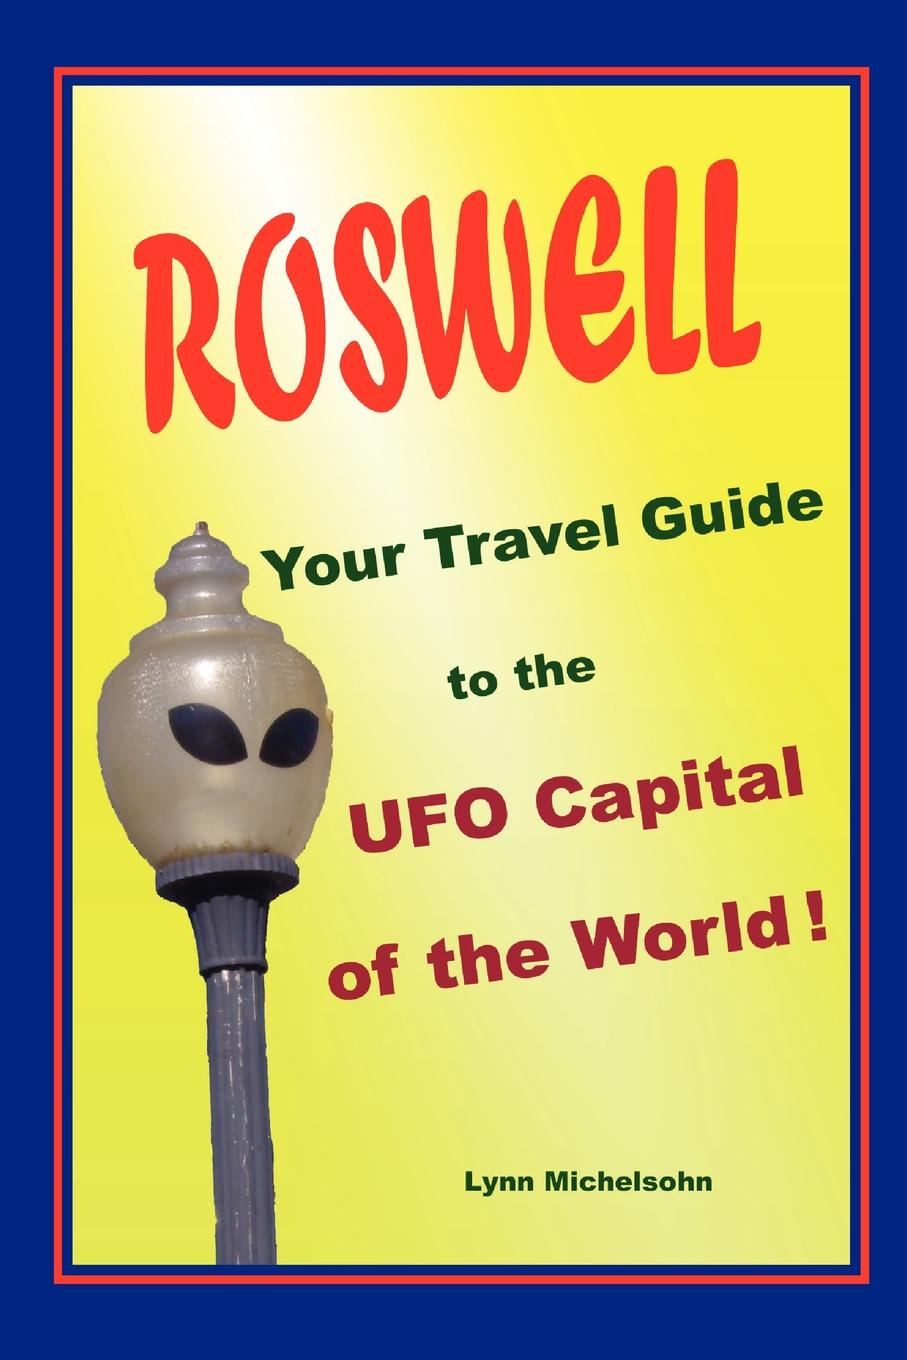 Lynn Michelsohn Roswell, Your Travel Guide to the UFO Capital of World.